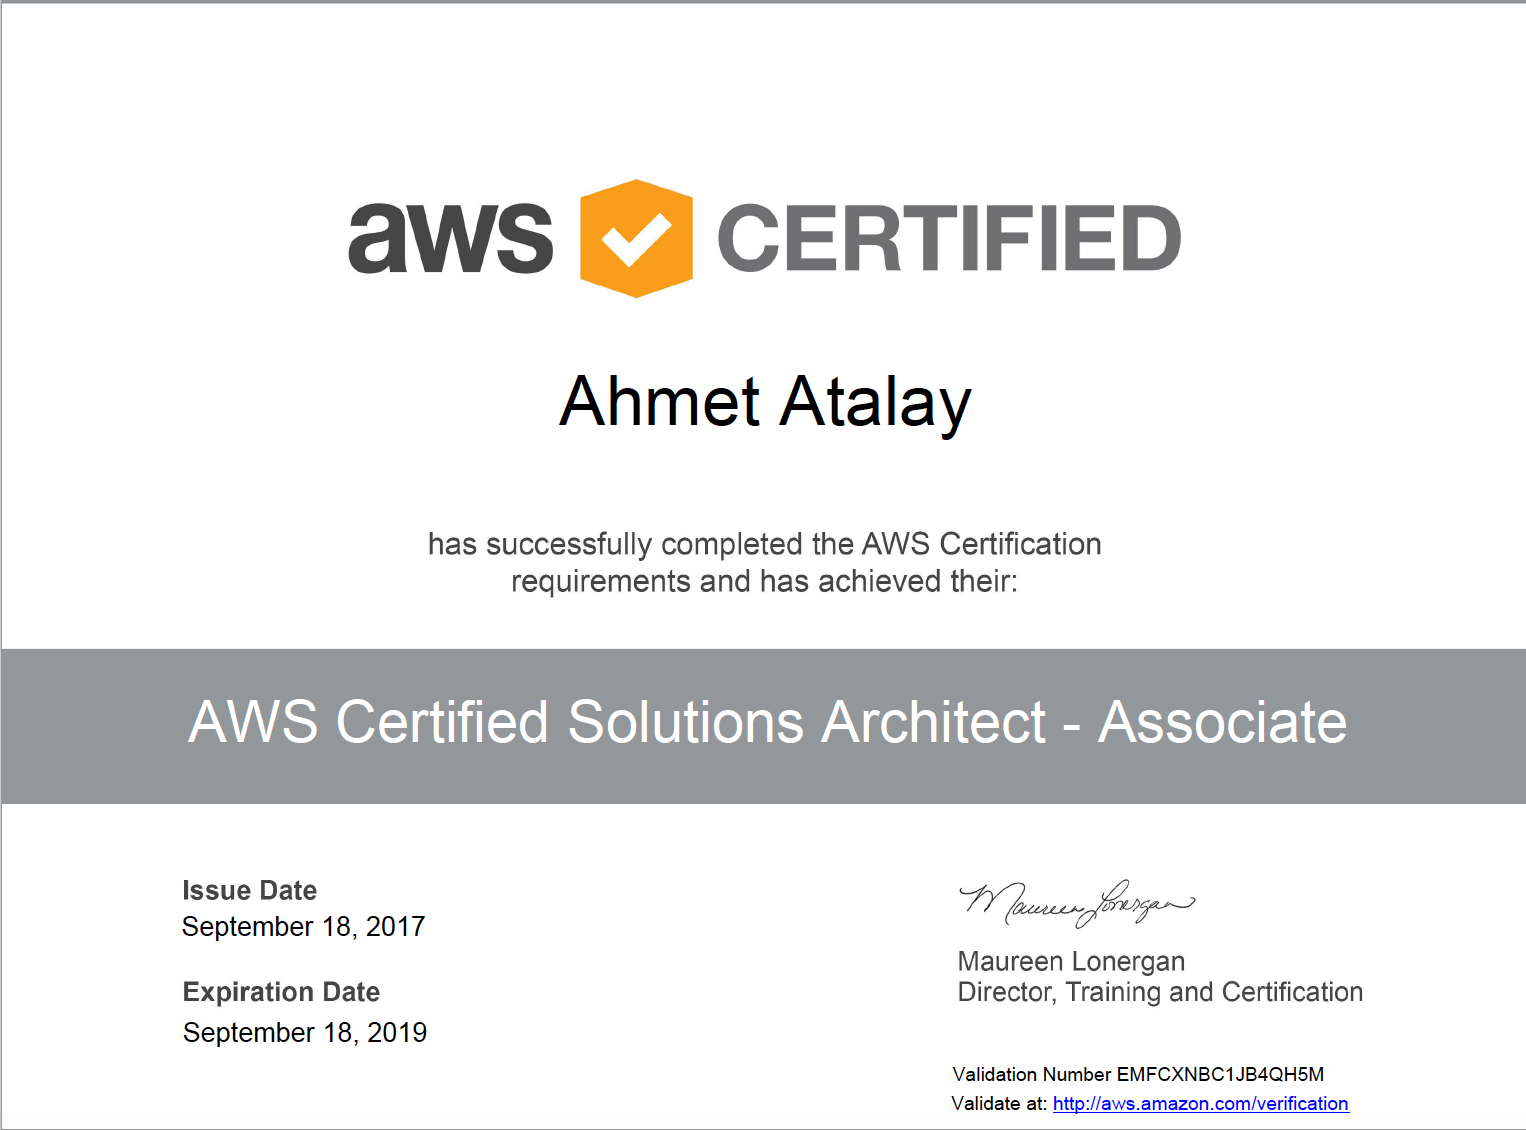 How I Studied For The Aws Certified Solution Architect